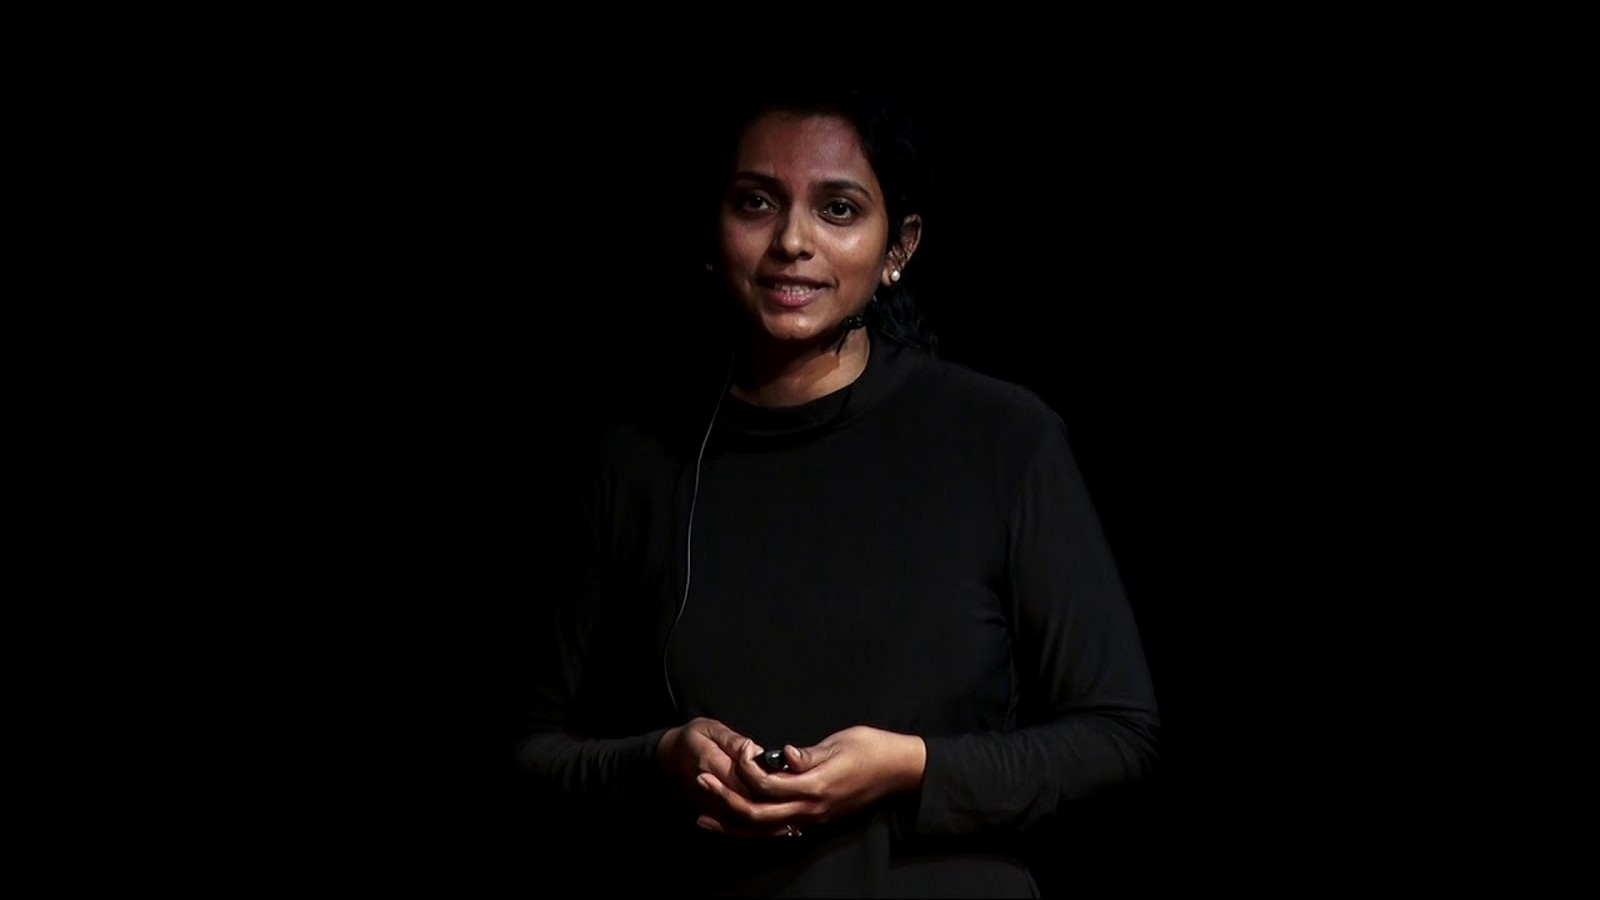 TedTalks for Architects: What if the poor were part of city planning? by Smruti Jukur Johari - Sheet10